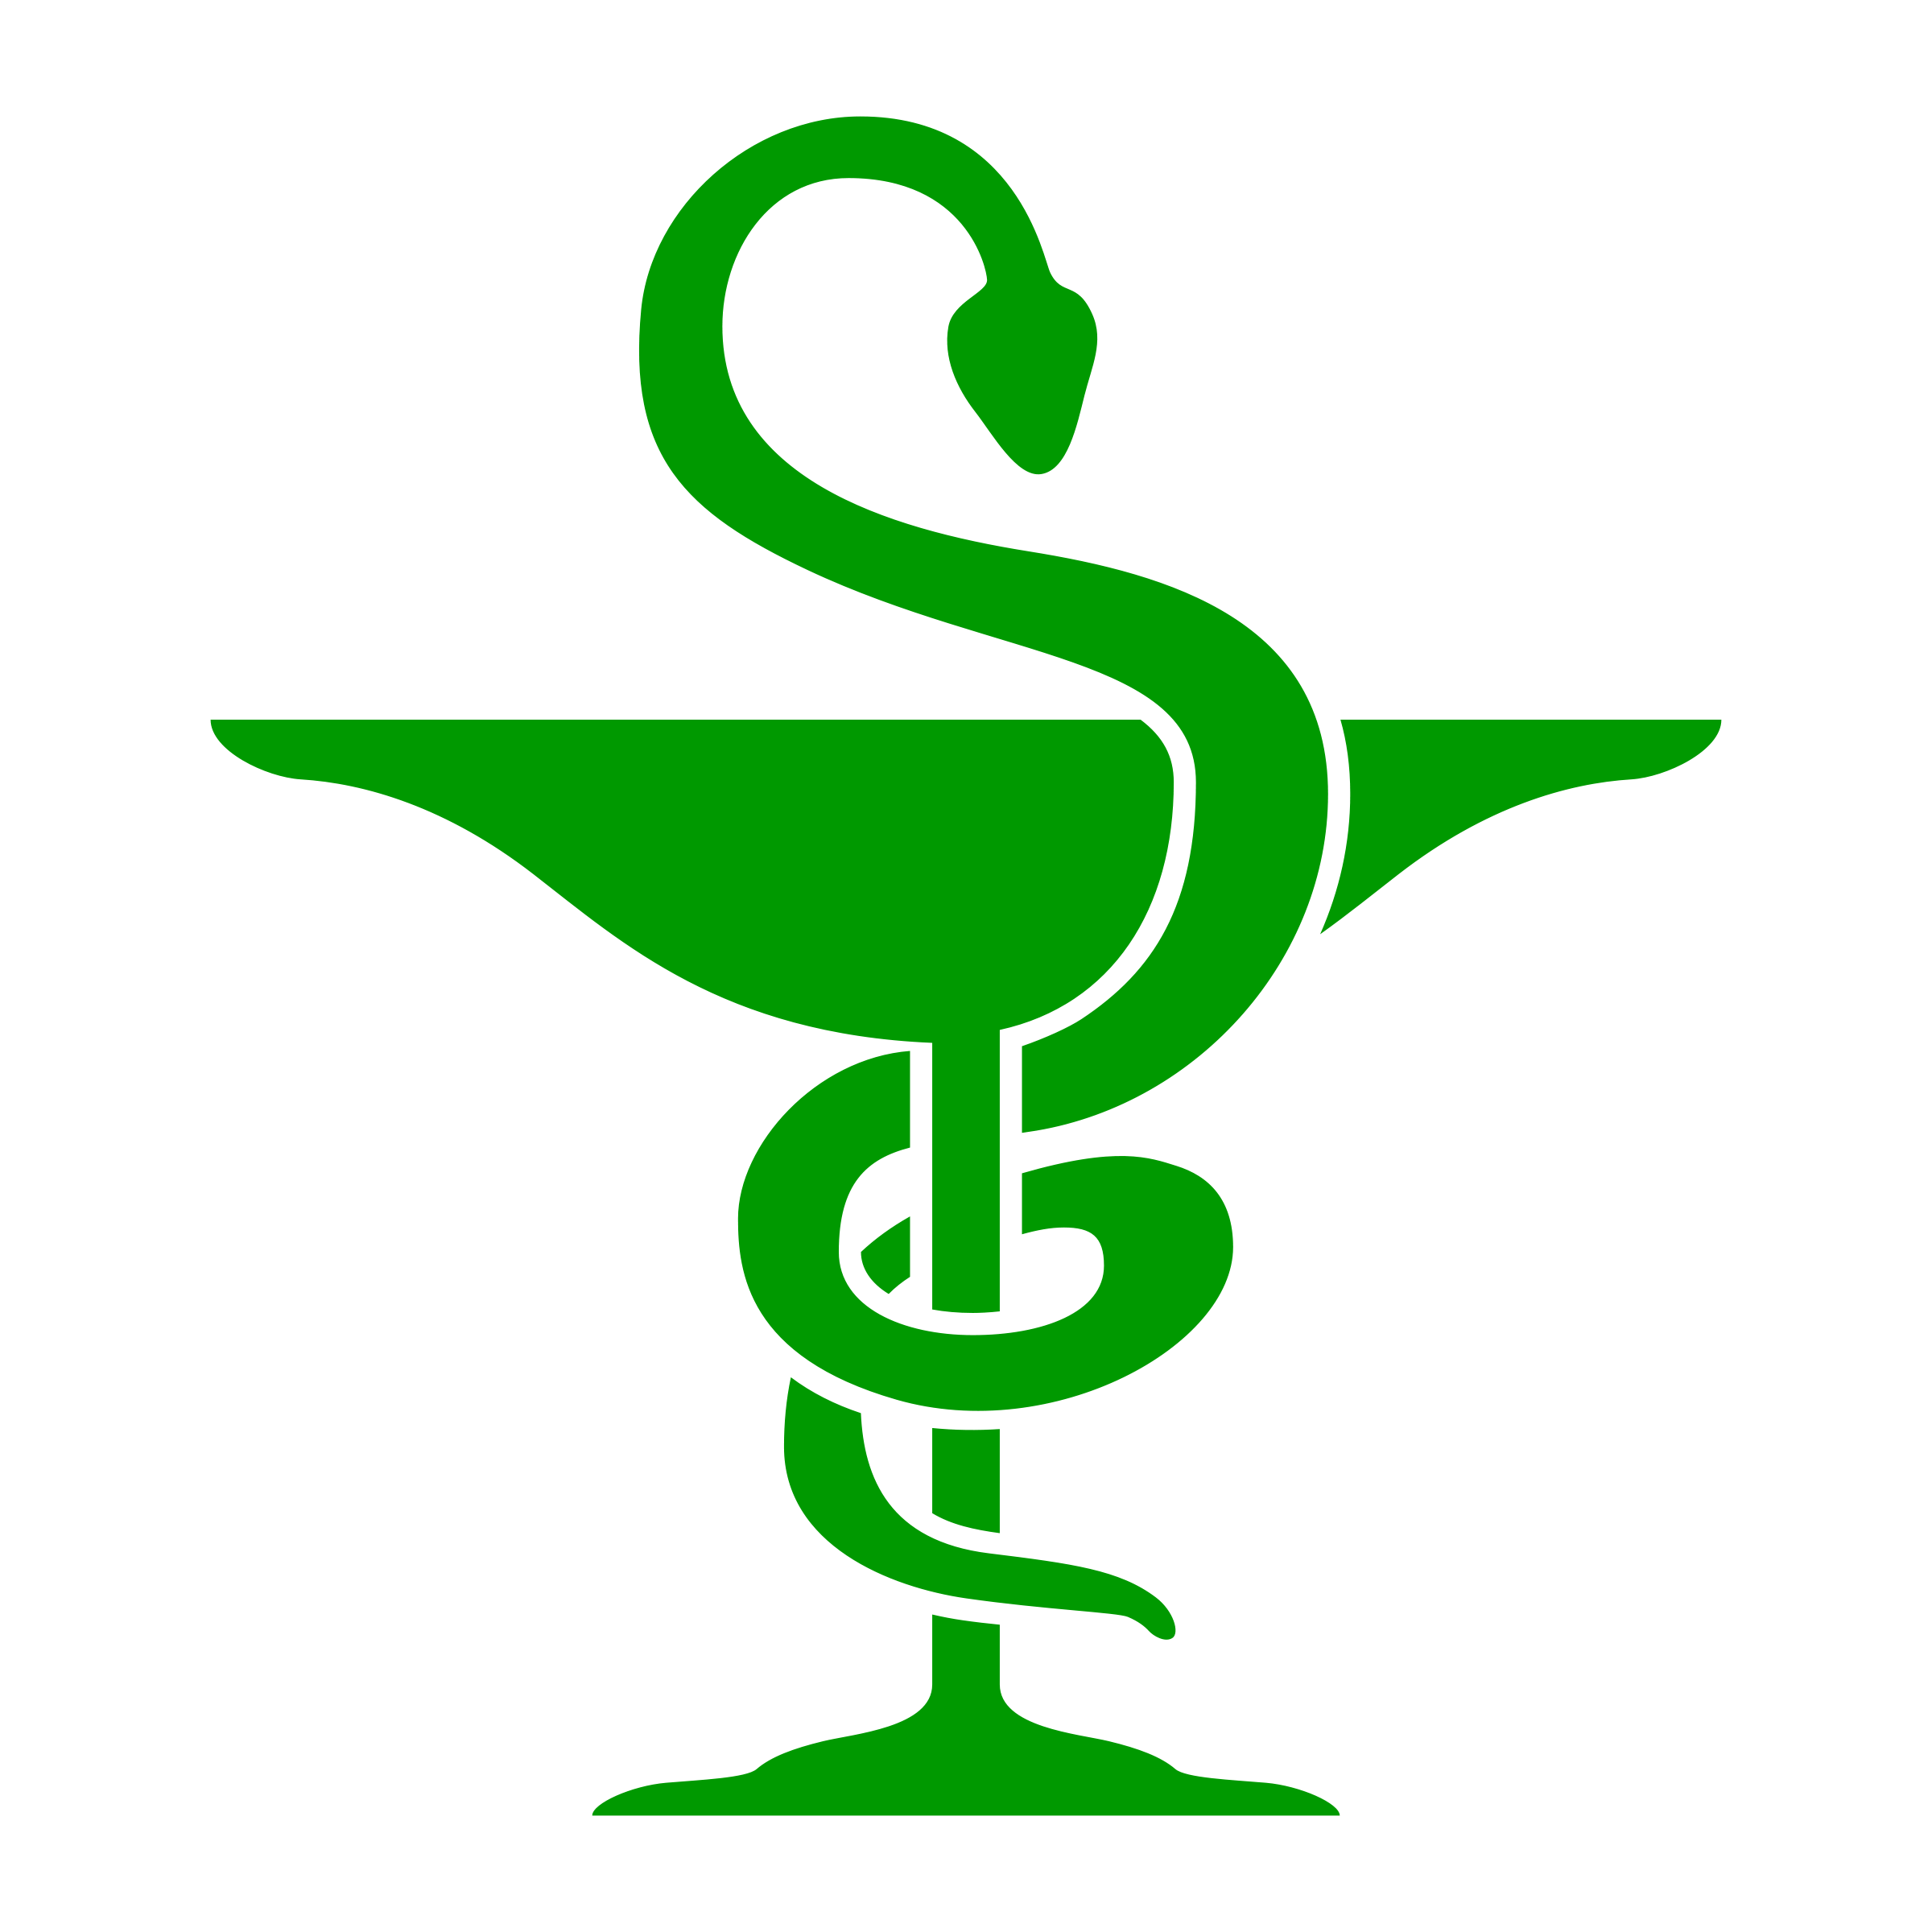 Pharmacist drawing outfit. Pharmacy logo google zoeken